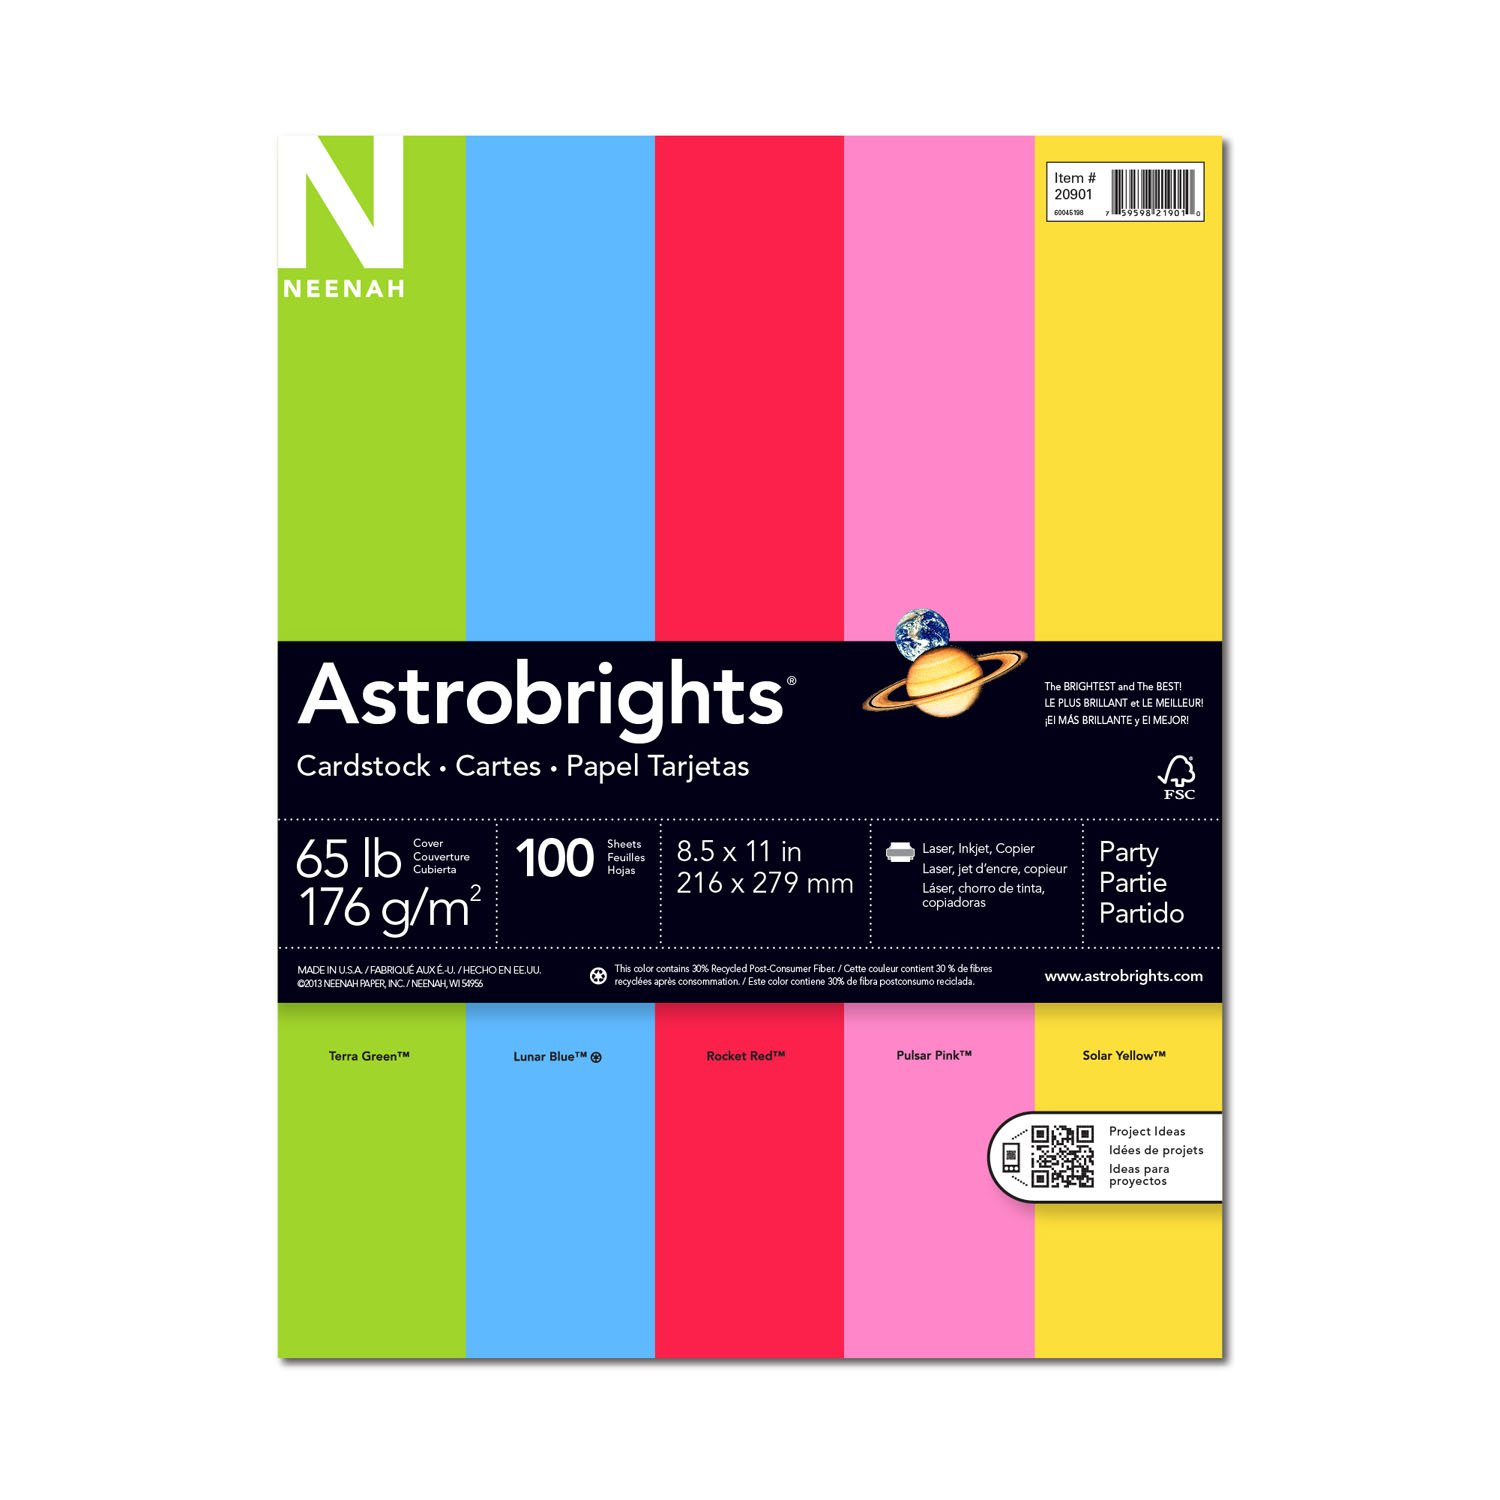 Multi colored cardstock paper - Amazon Com Astrobrights Colored Cardstock 8 5 X 11 65 Lb 176 Gsm Party 5 Color Assortment 100 Sheets Cardstock Papers Office Products